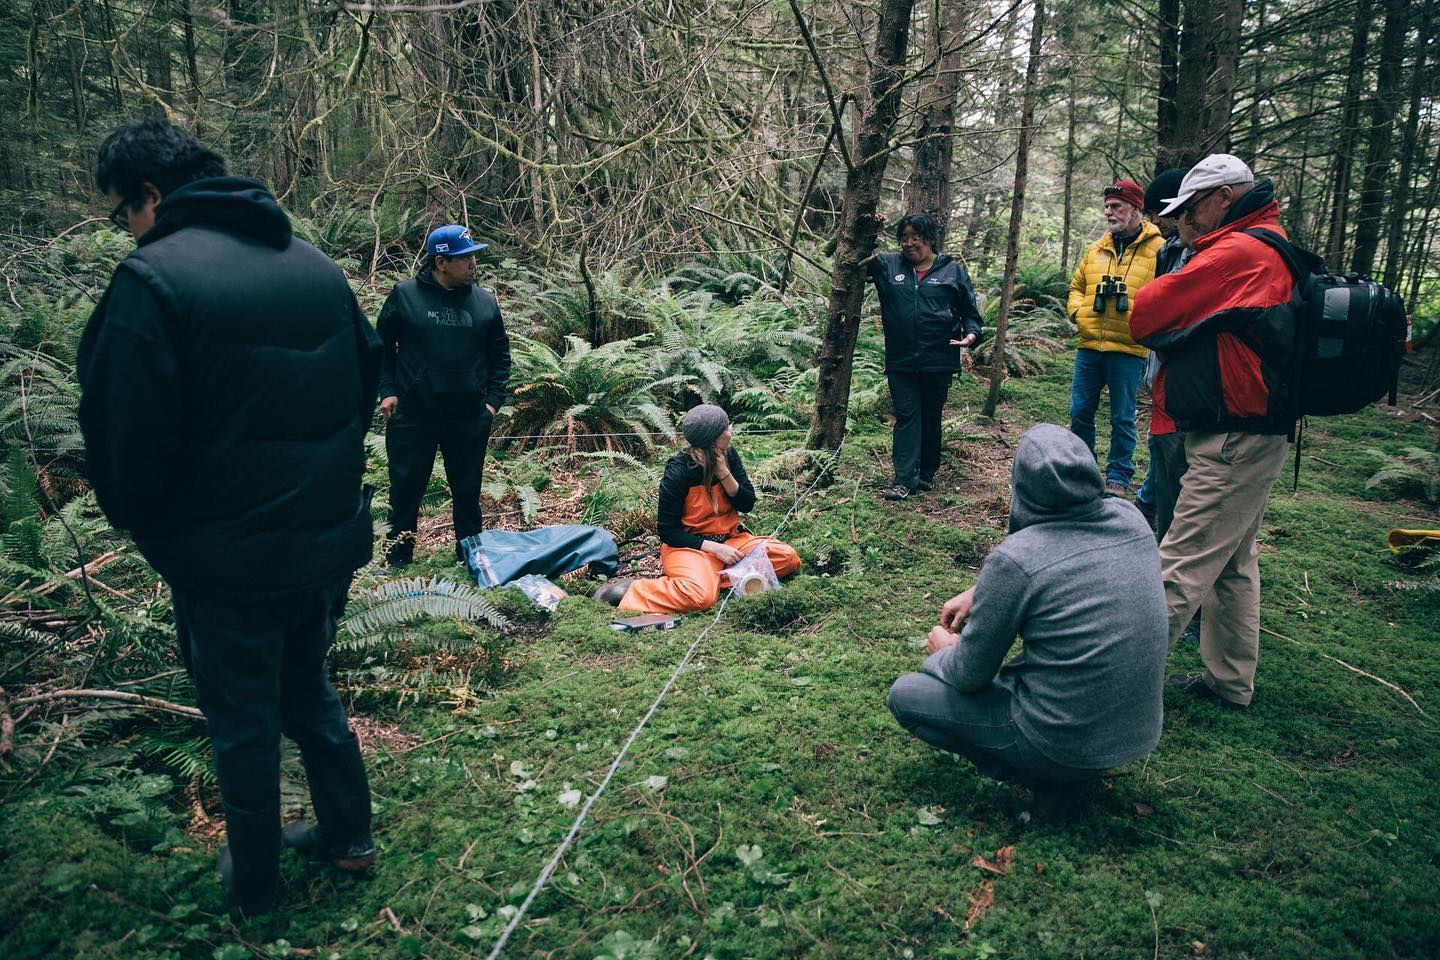 About half a dozen scientists stand or sit around a wire strung across the forest to collect bear hair and samples in the Great Bear Rainforest.